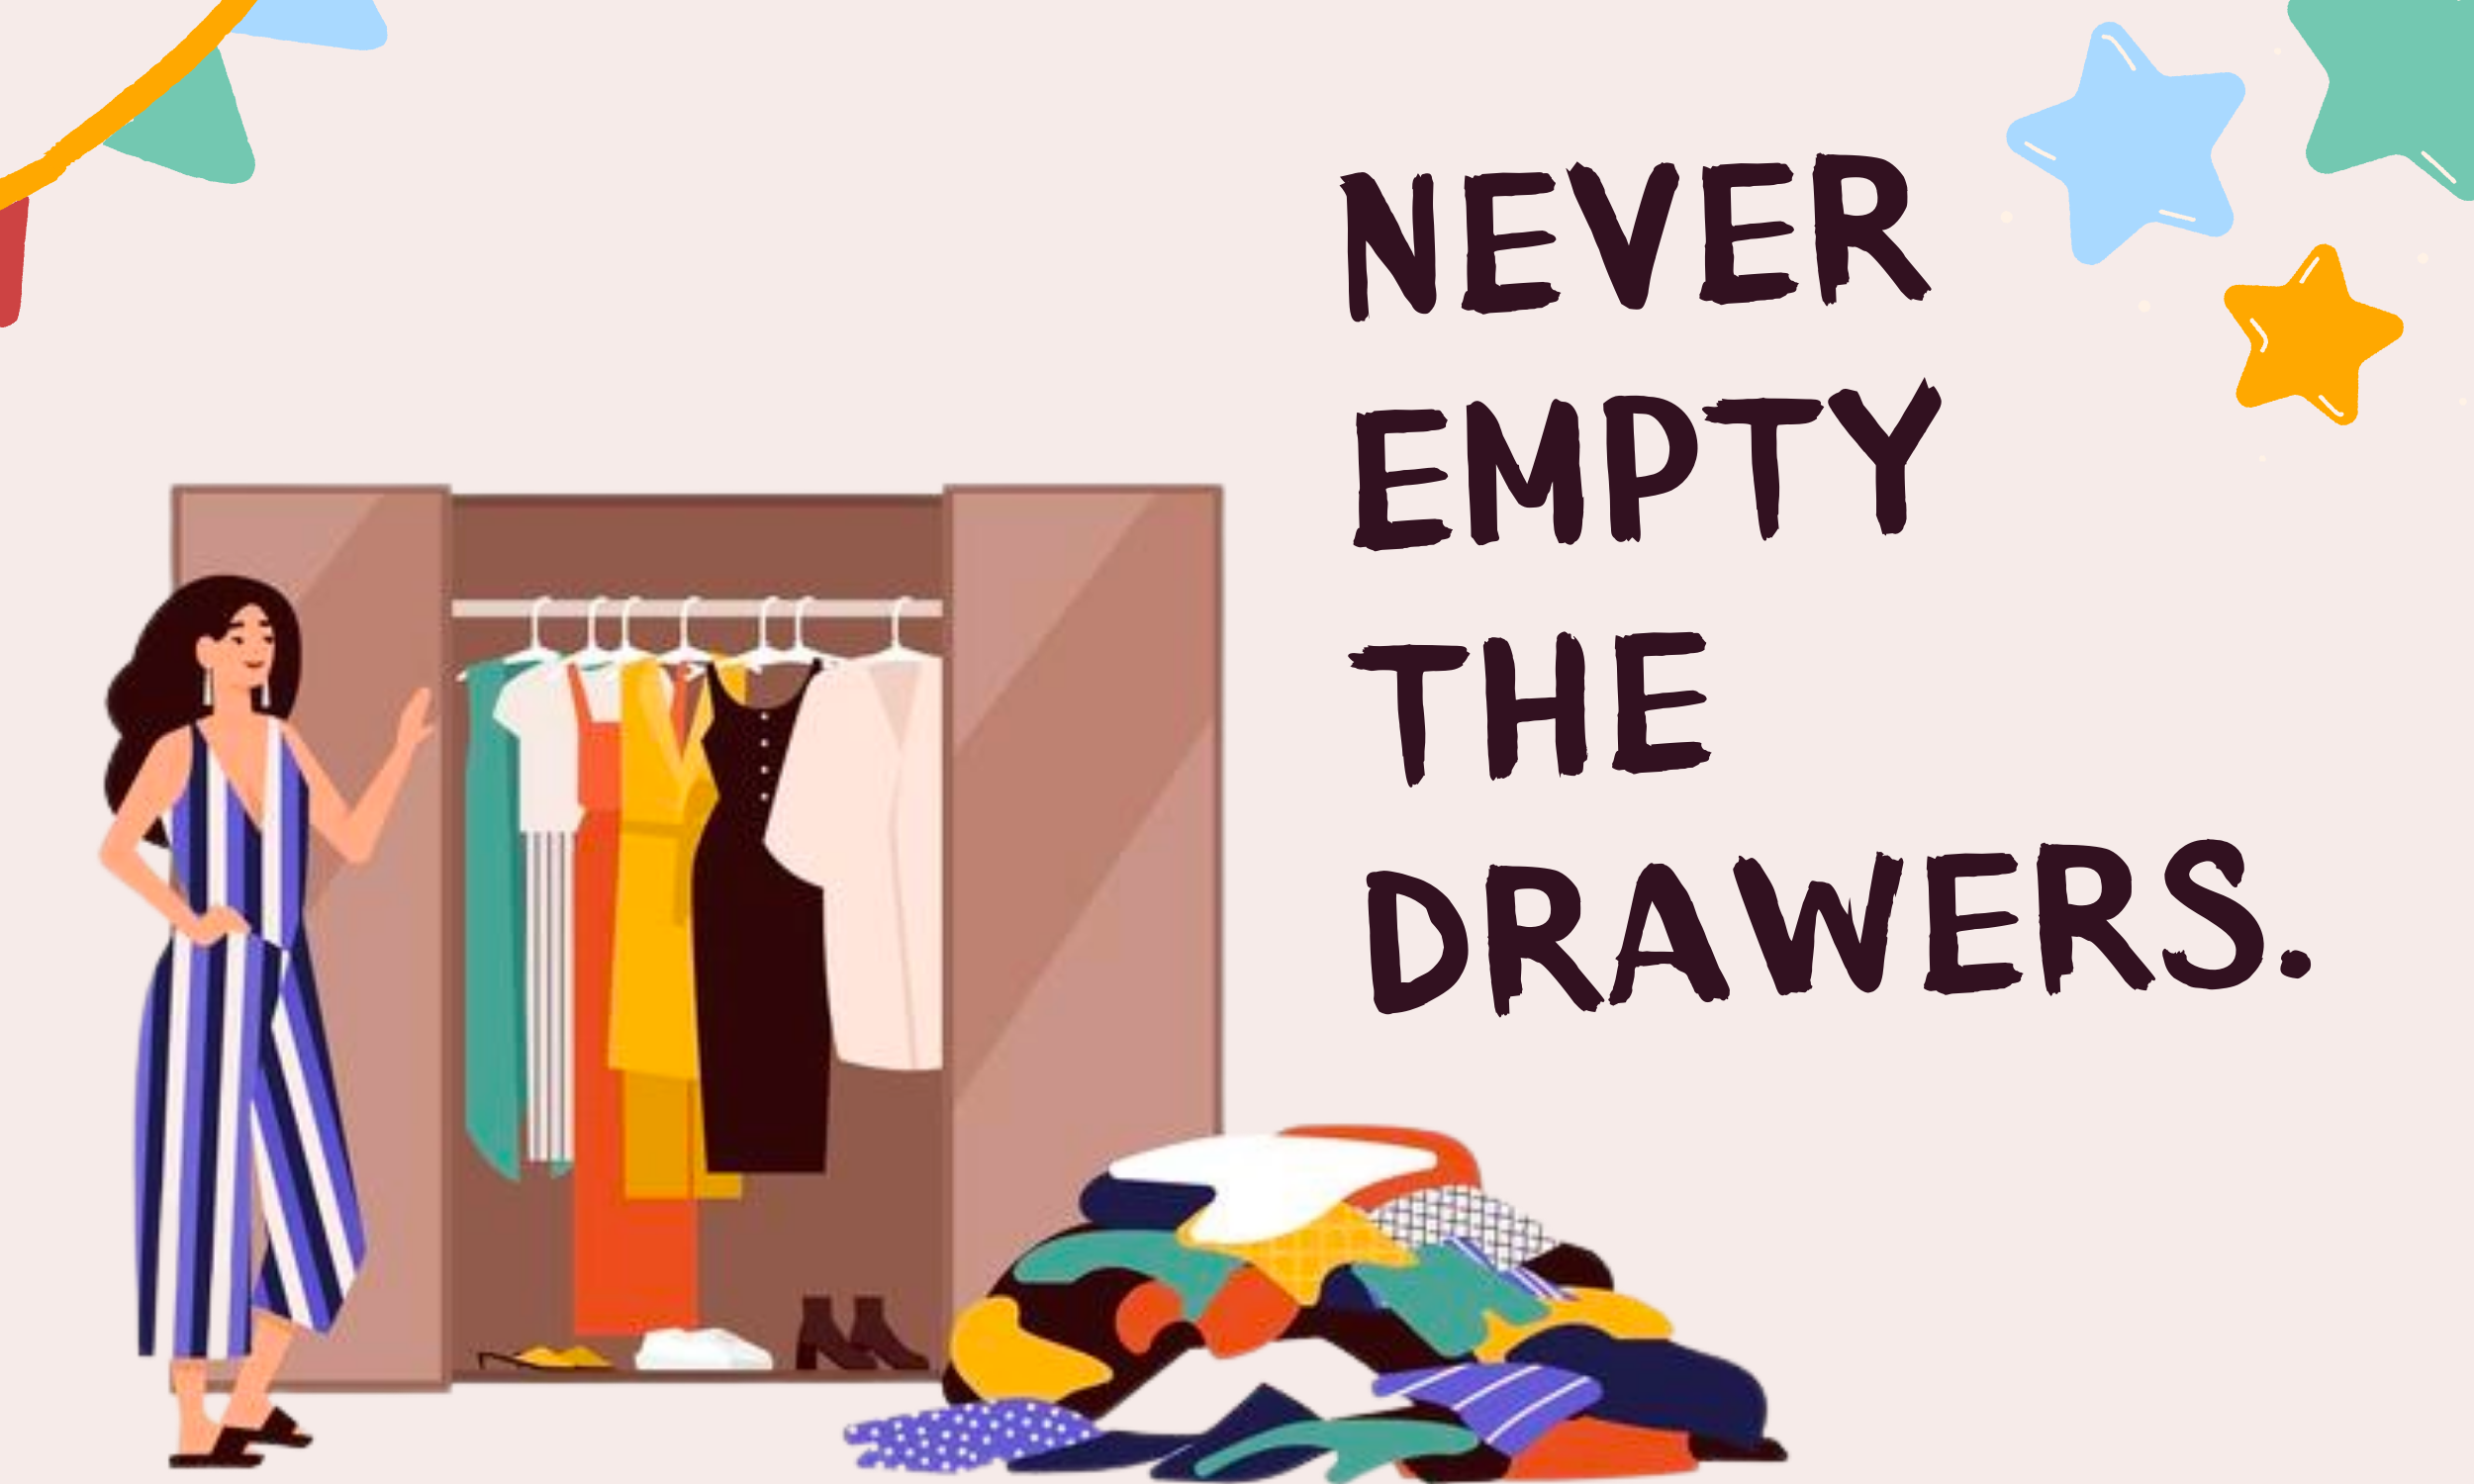 NEVER-EMPTY-THE-DRAWERS